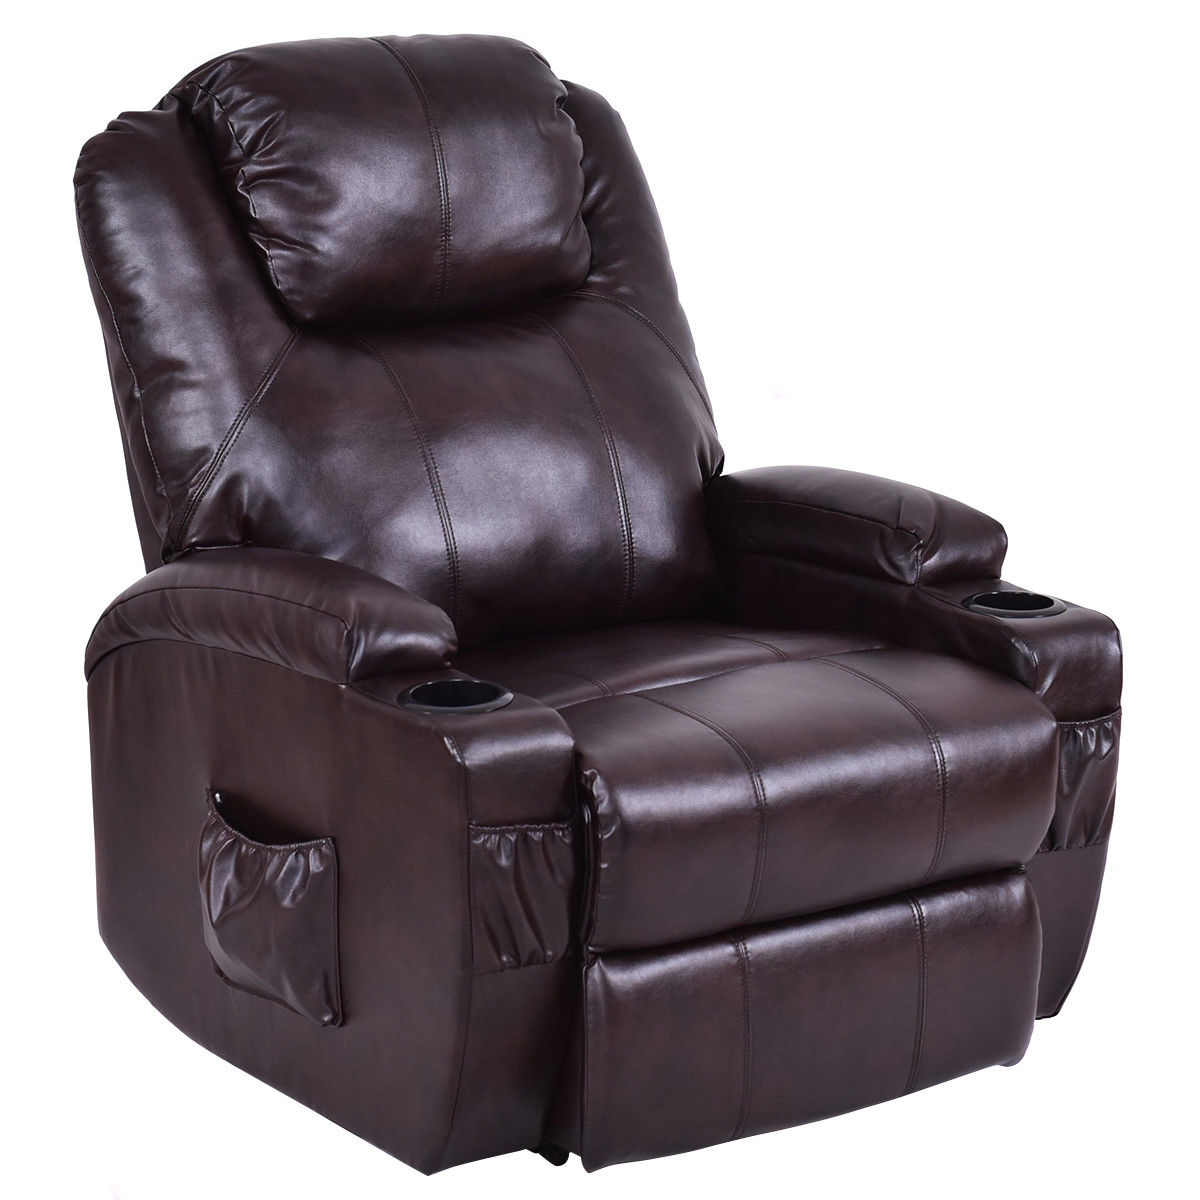 Costway Lift Chair Electric Power Recliner w Remote and Cup Holder Living Room Furniture by Costway